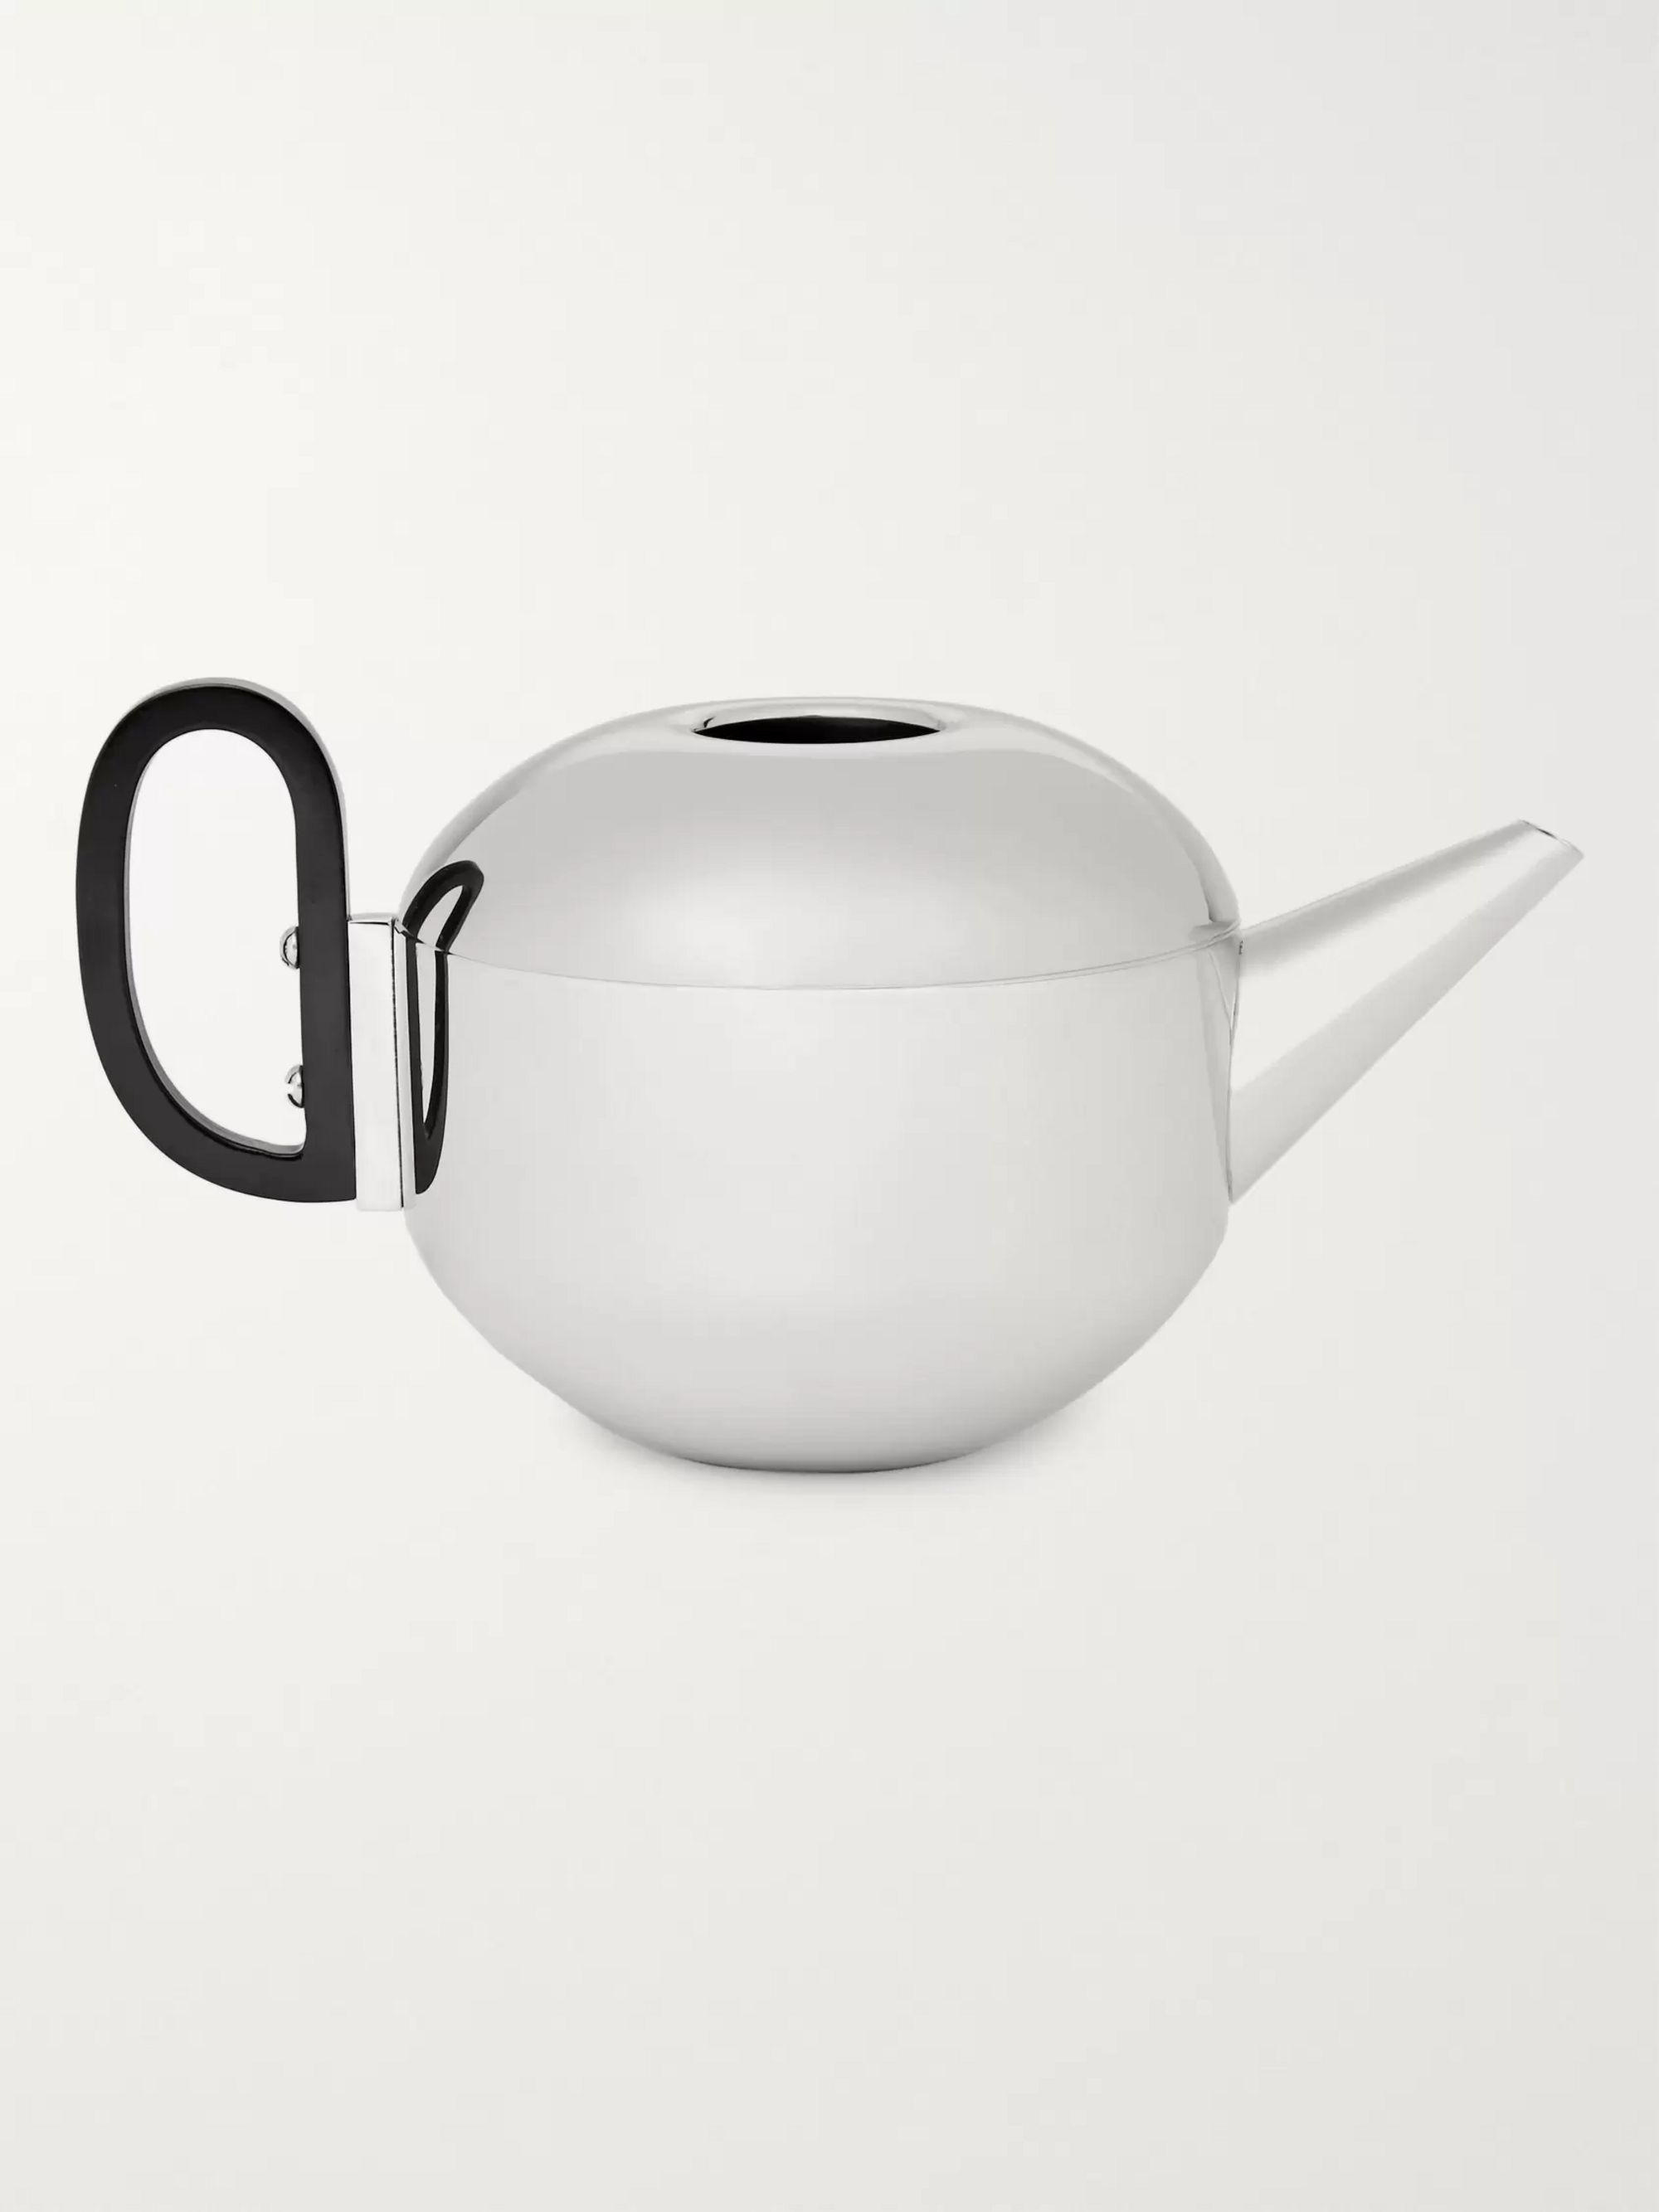 Tom Dixon Form Stainless Steel Tea Set